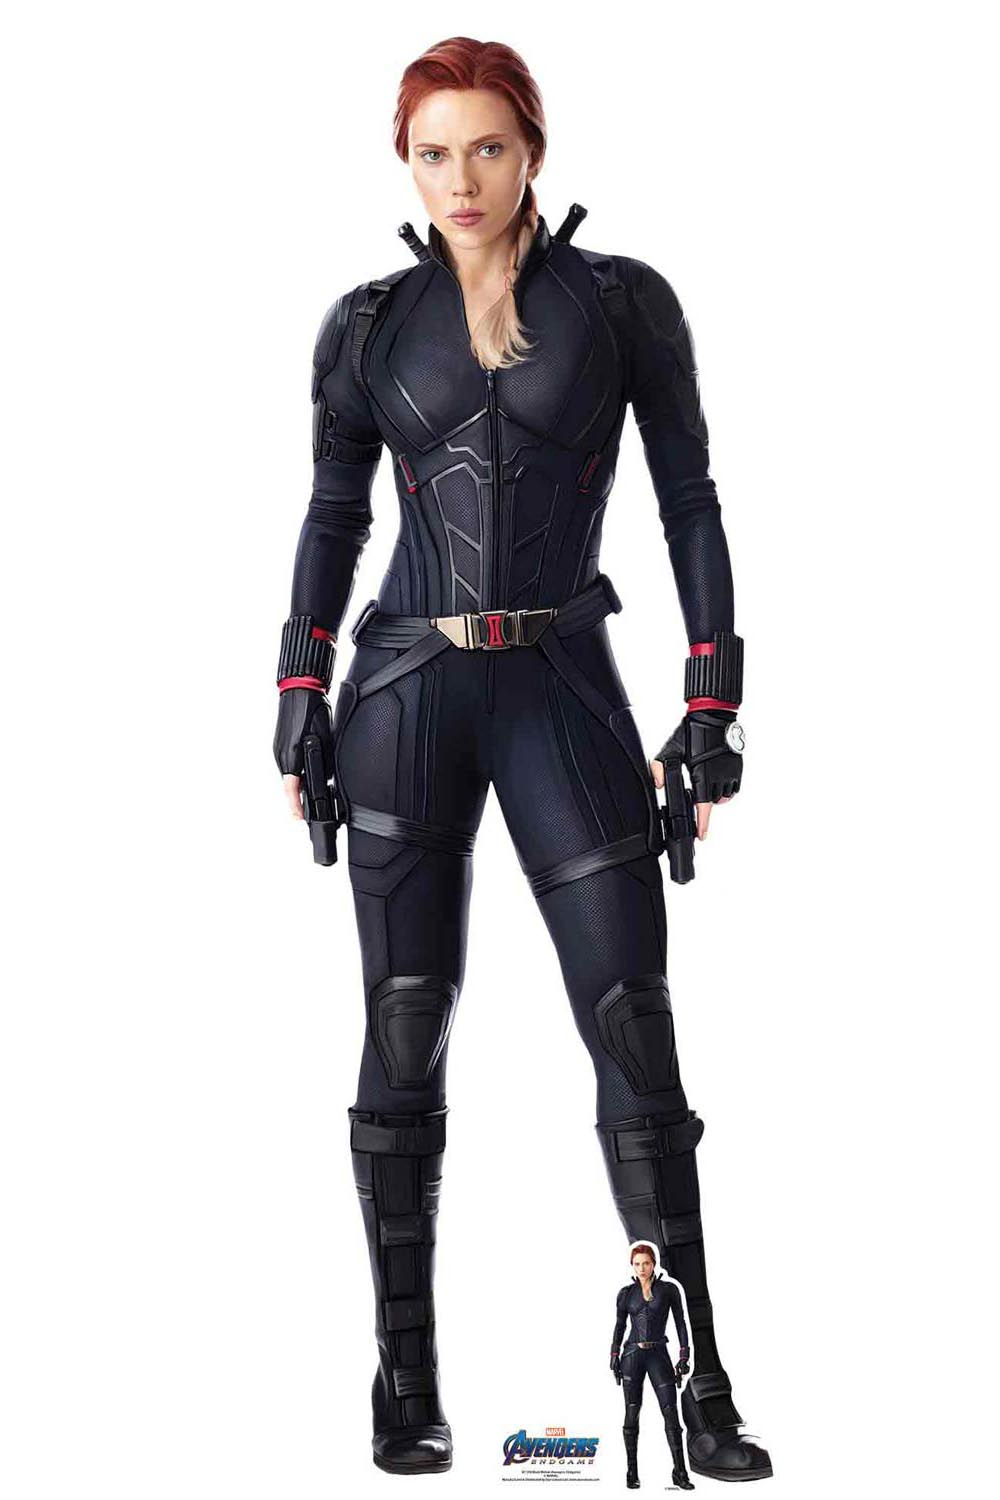 Black Widow From Marvel Avengers Endgame Official Lifesize Cardboard Cutout